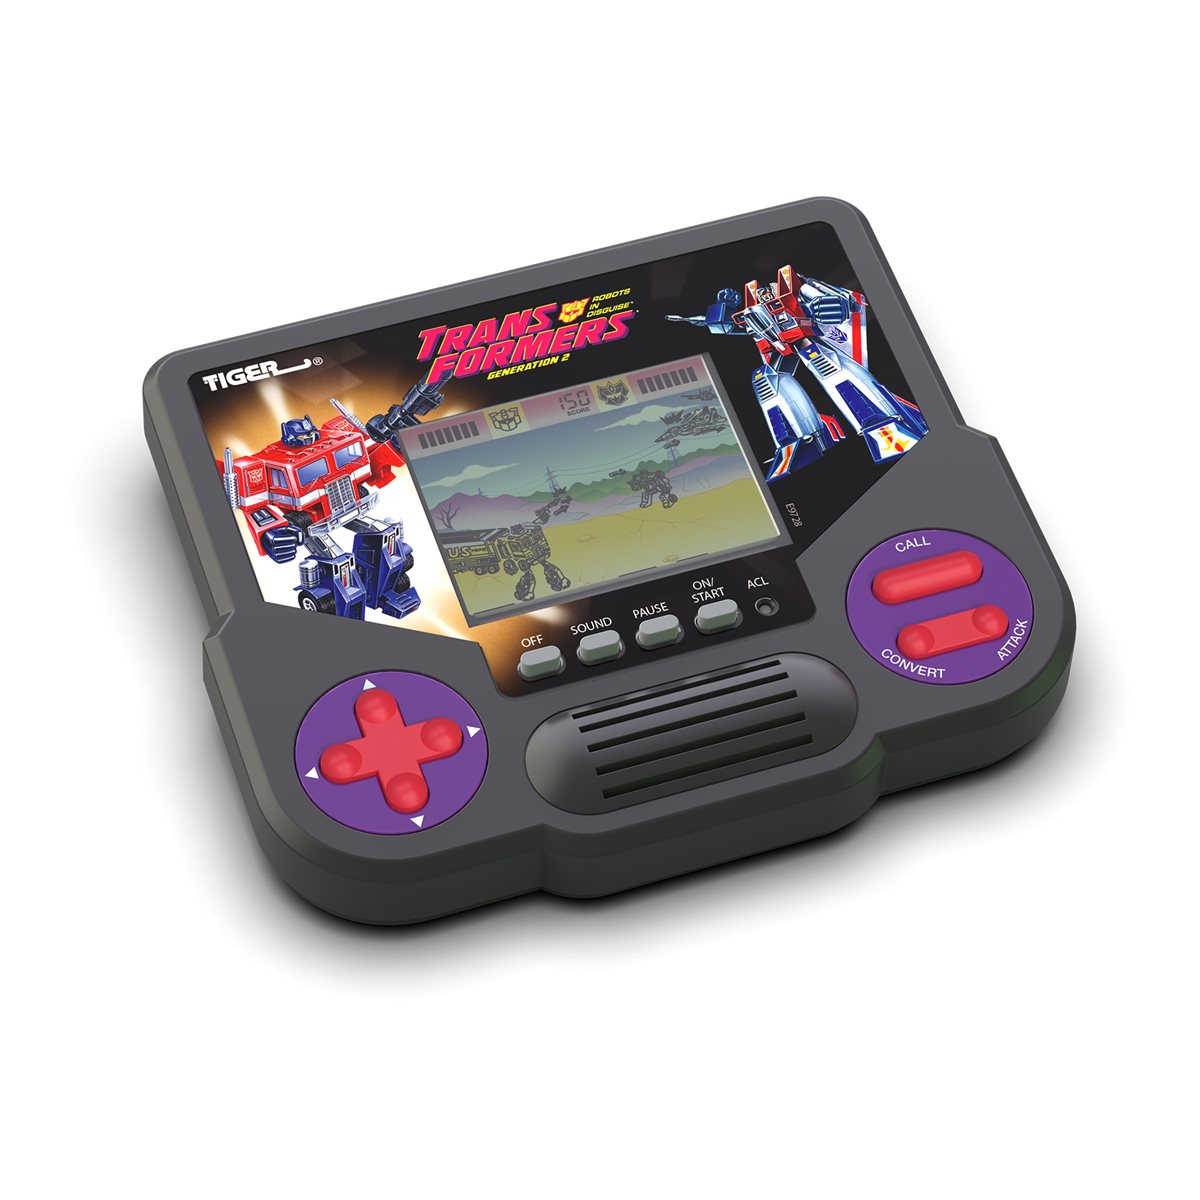 Tiger Electronics classic handheld LCD games are coming back this fall 17